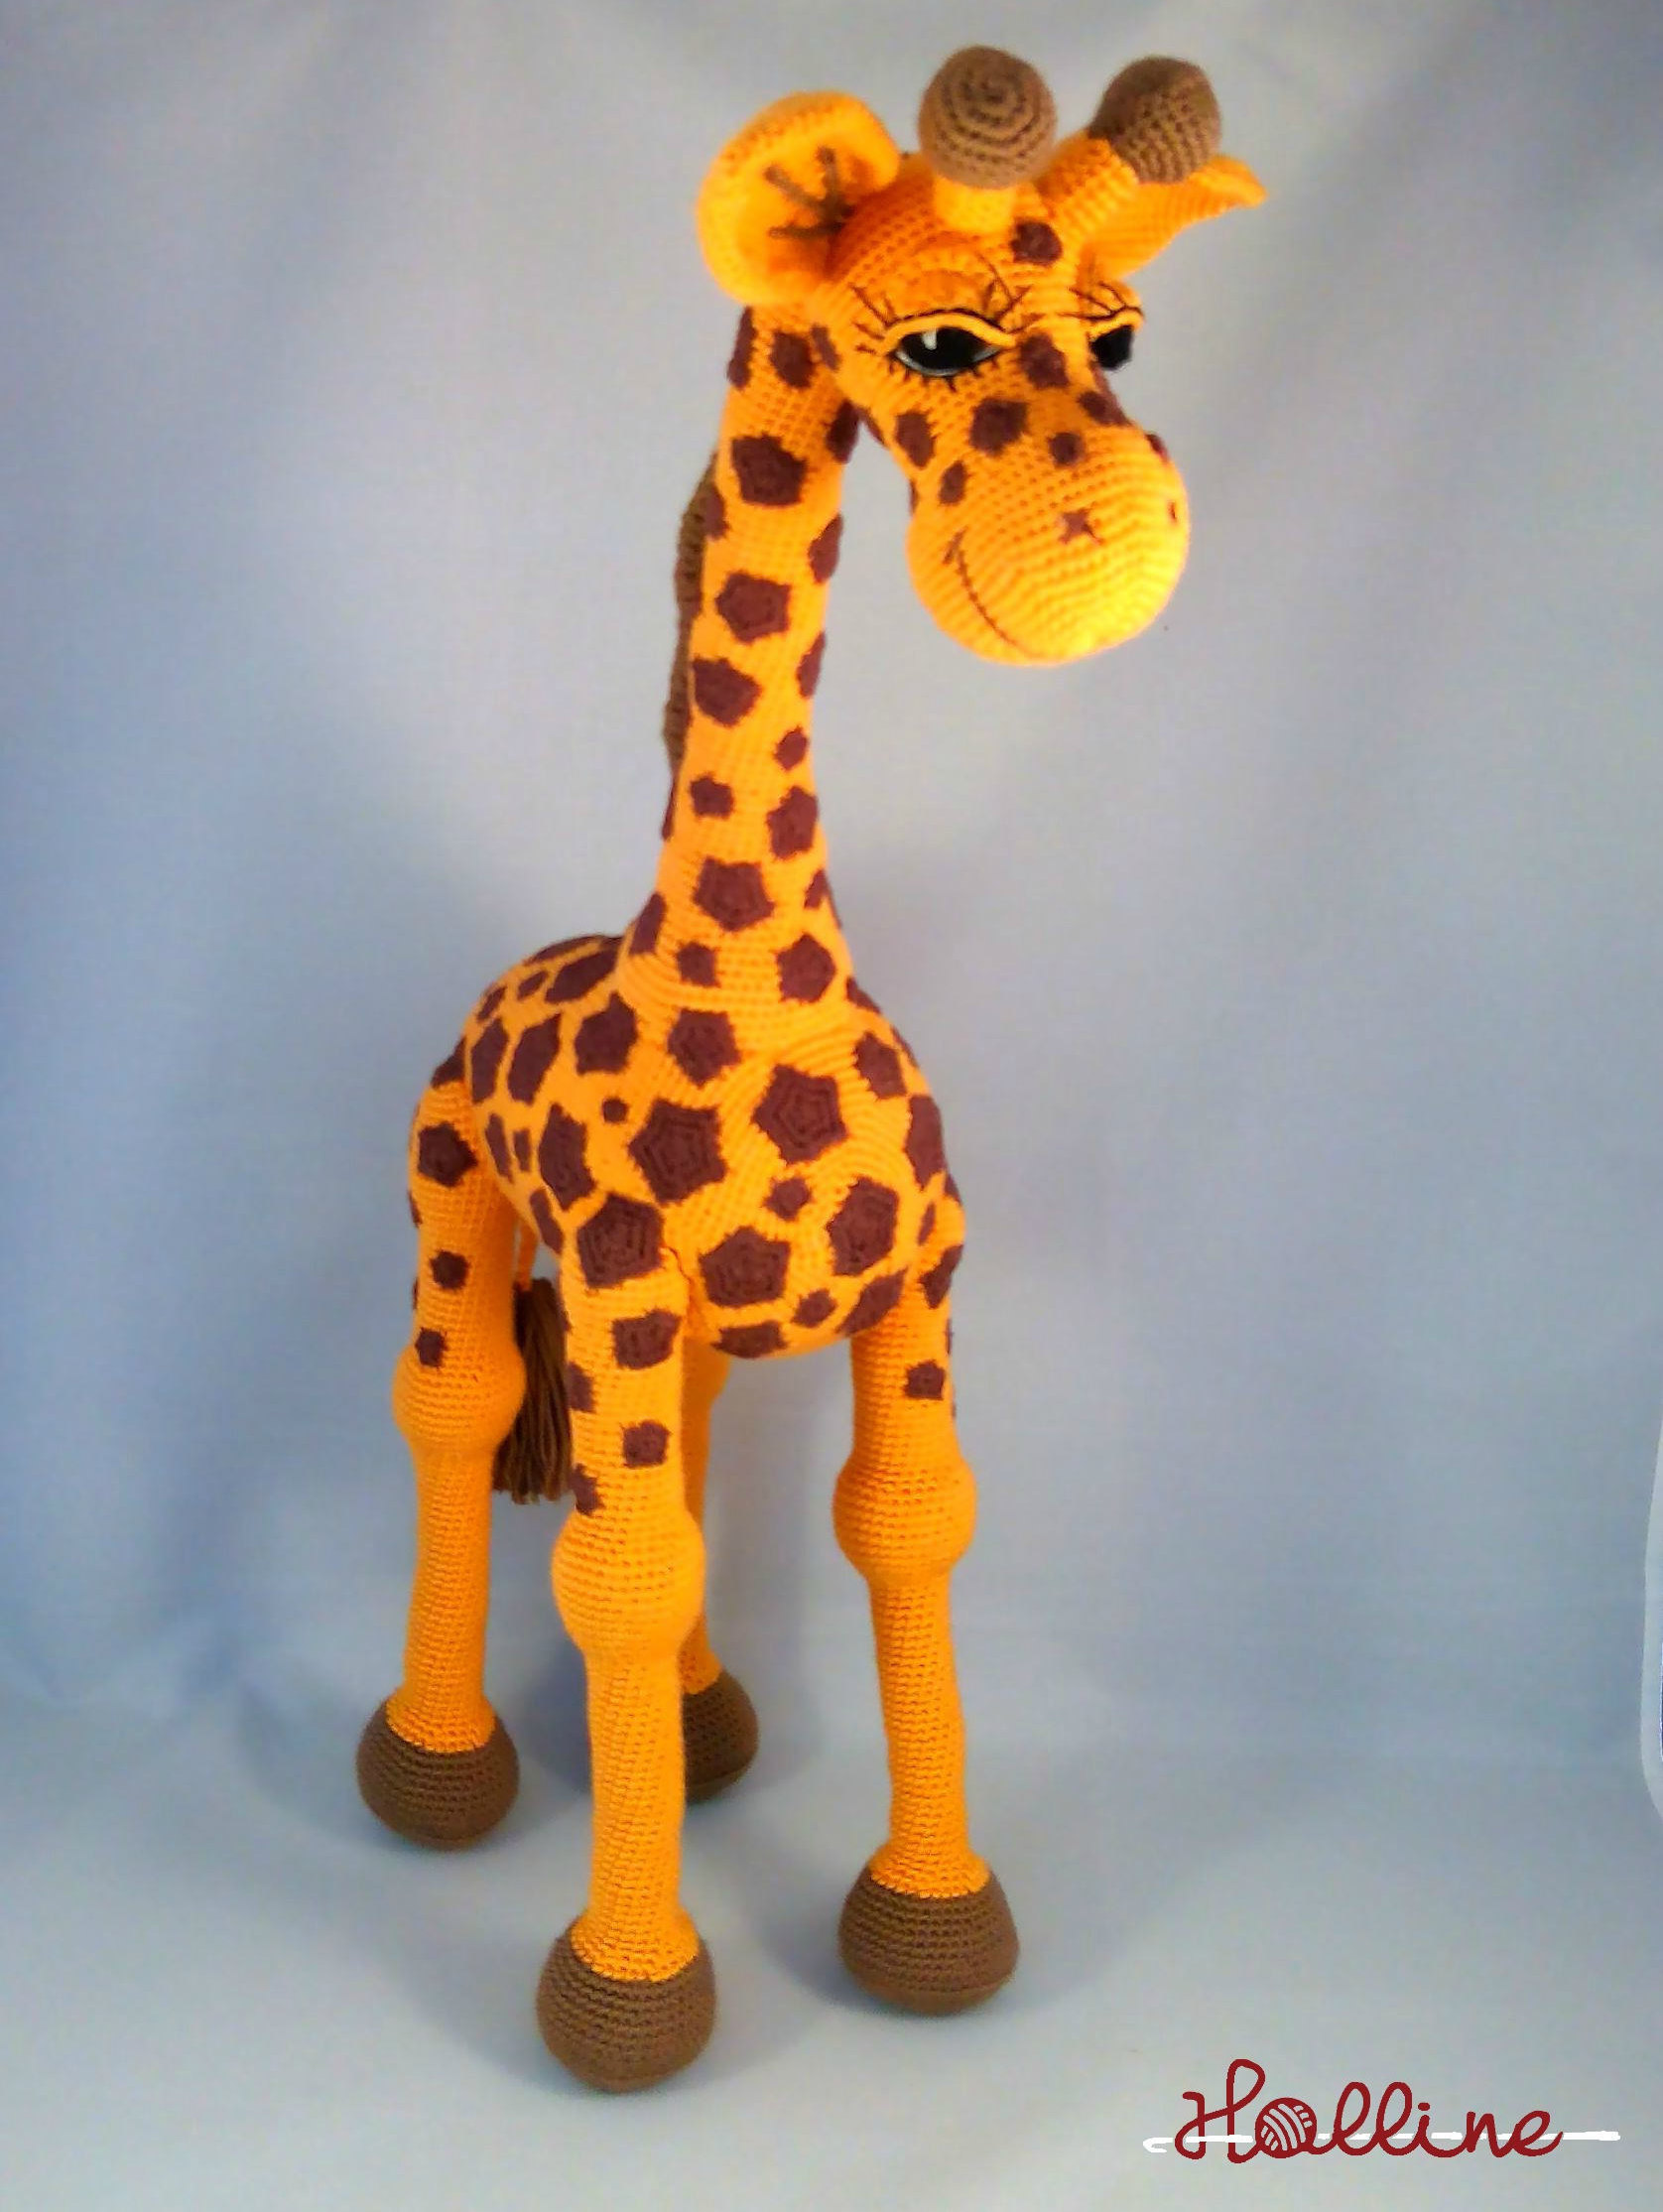 Giraffe Amigurumi Schema : PDF pattern Giraffe April crochet amigurumi giraffe English